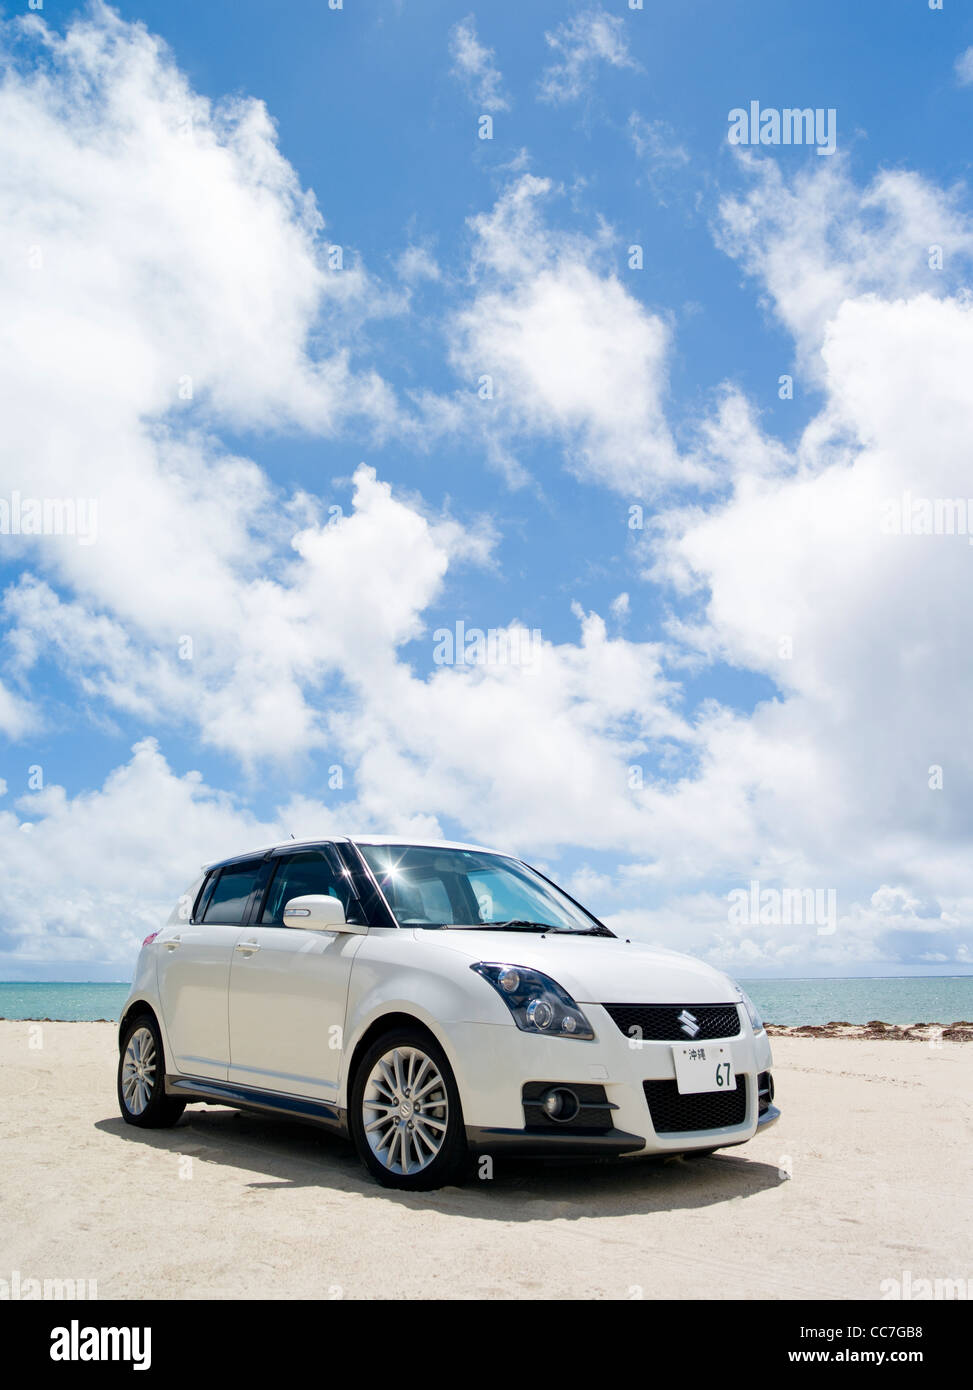 Suzuki Swift Sport Japanese Hatchback ZC31S - Stock Image